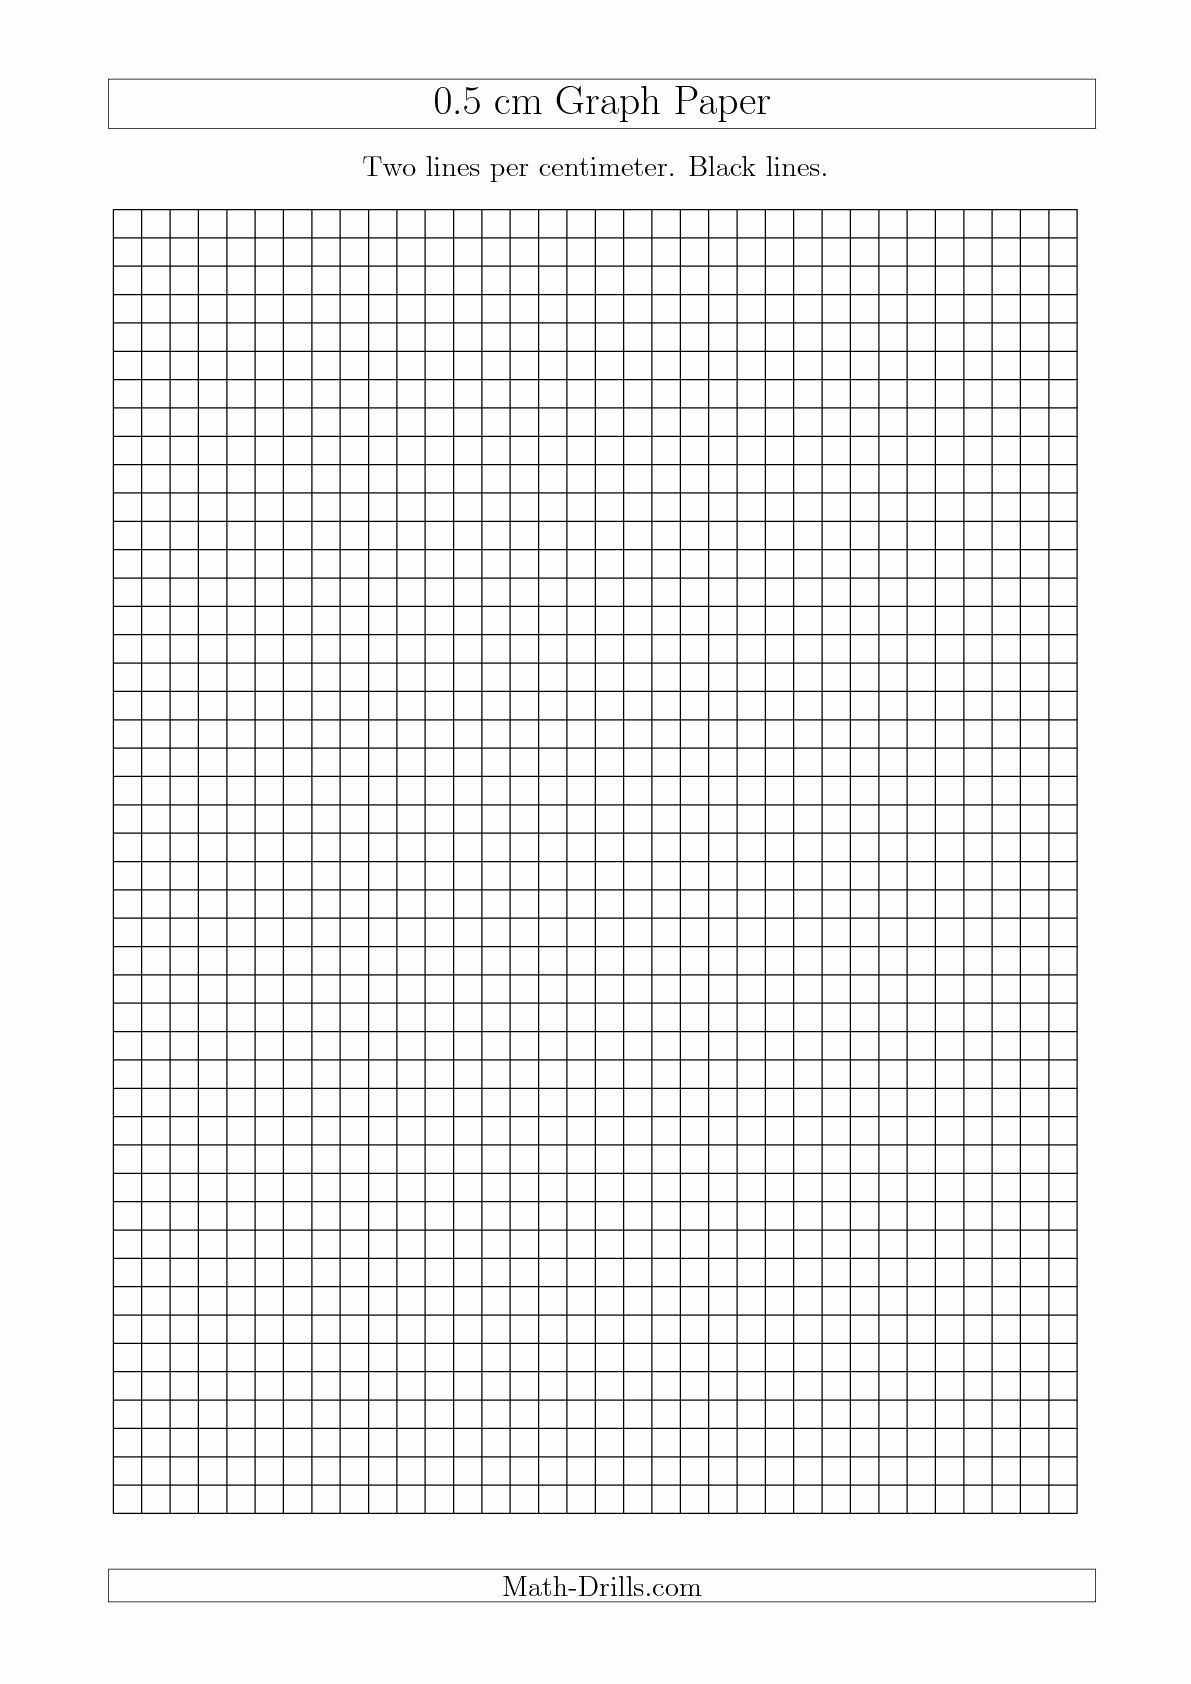 Printable Graph Paper Black Lines Awesome The 0 5 Cm Graph